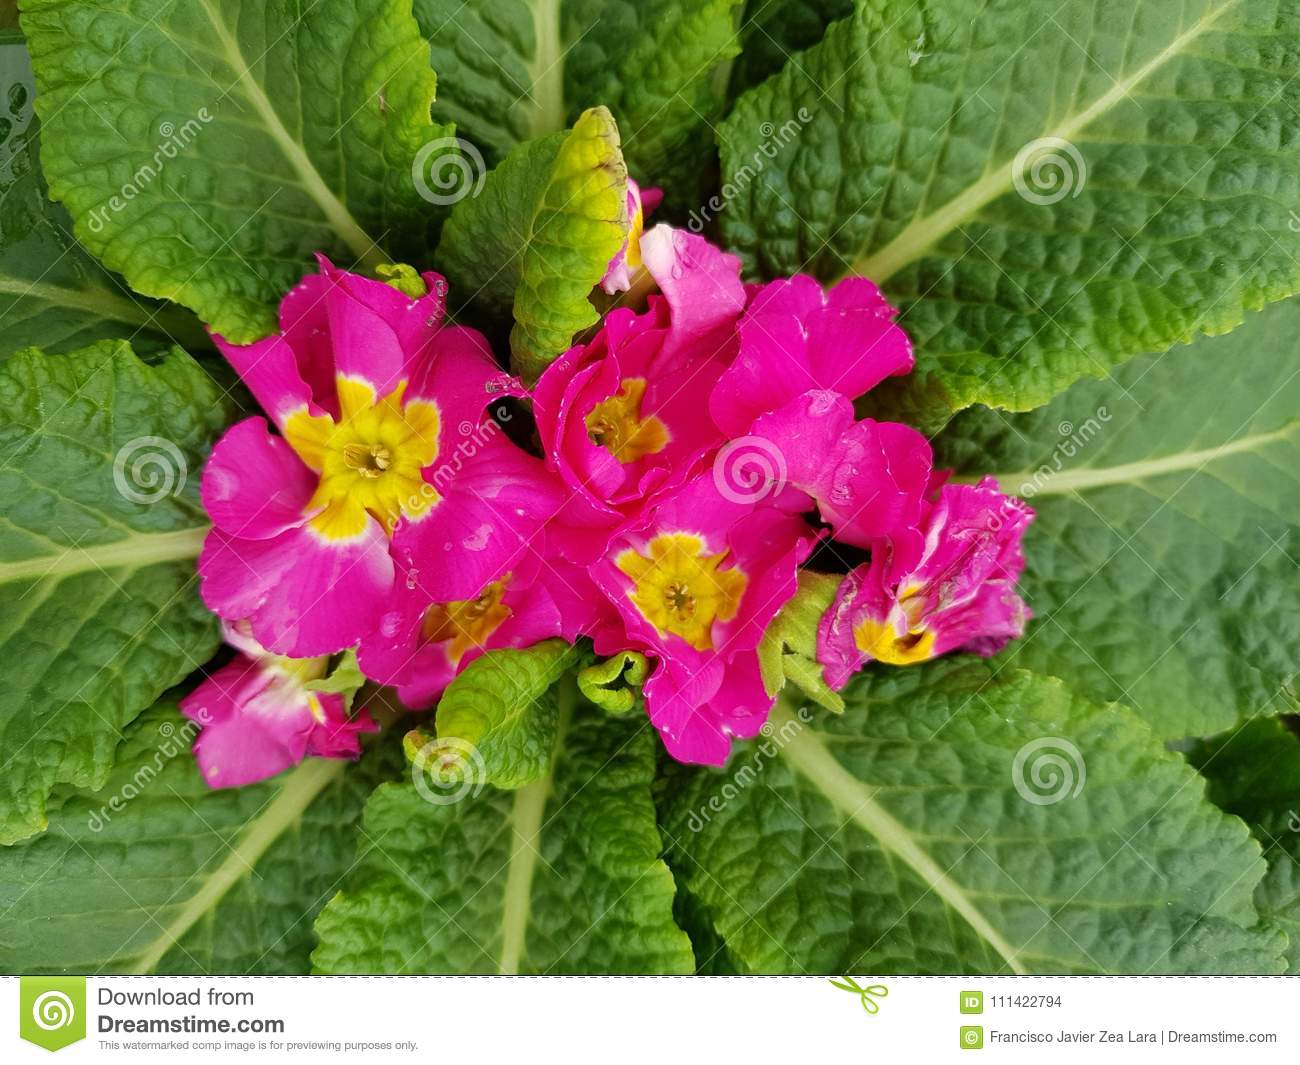 Primula With Small Pink Flowers In The Center Of The Green Leaves